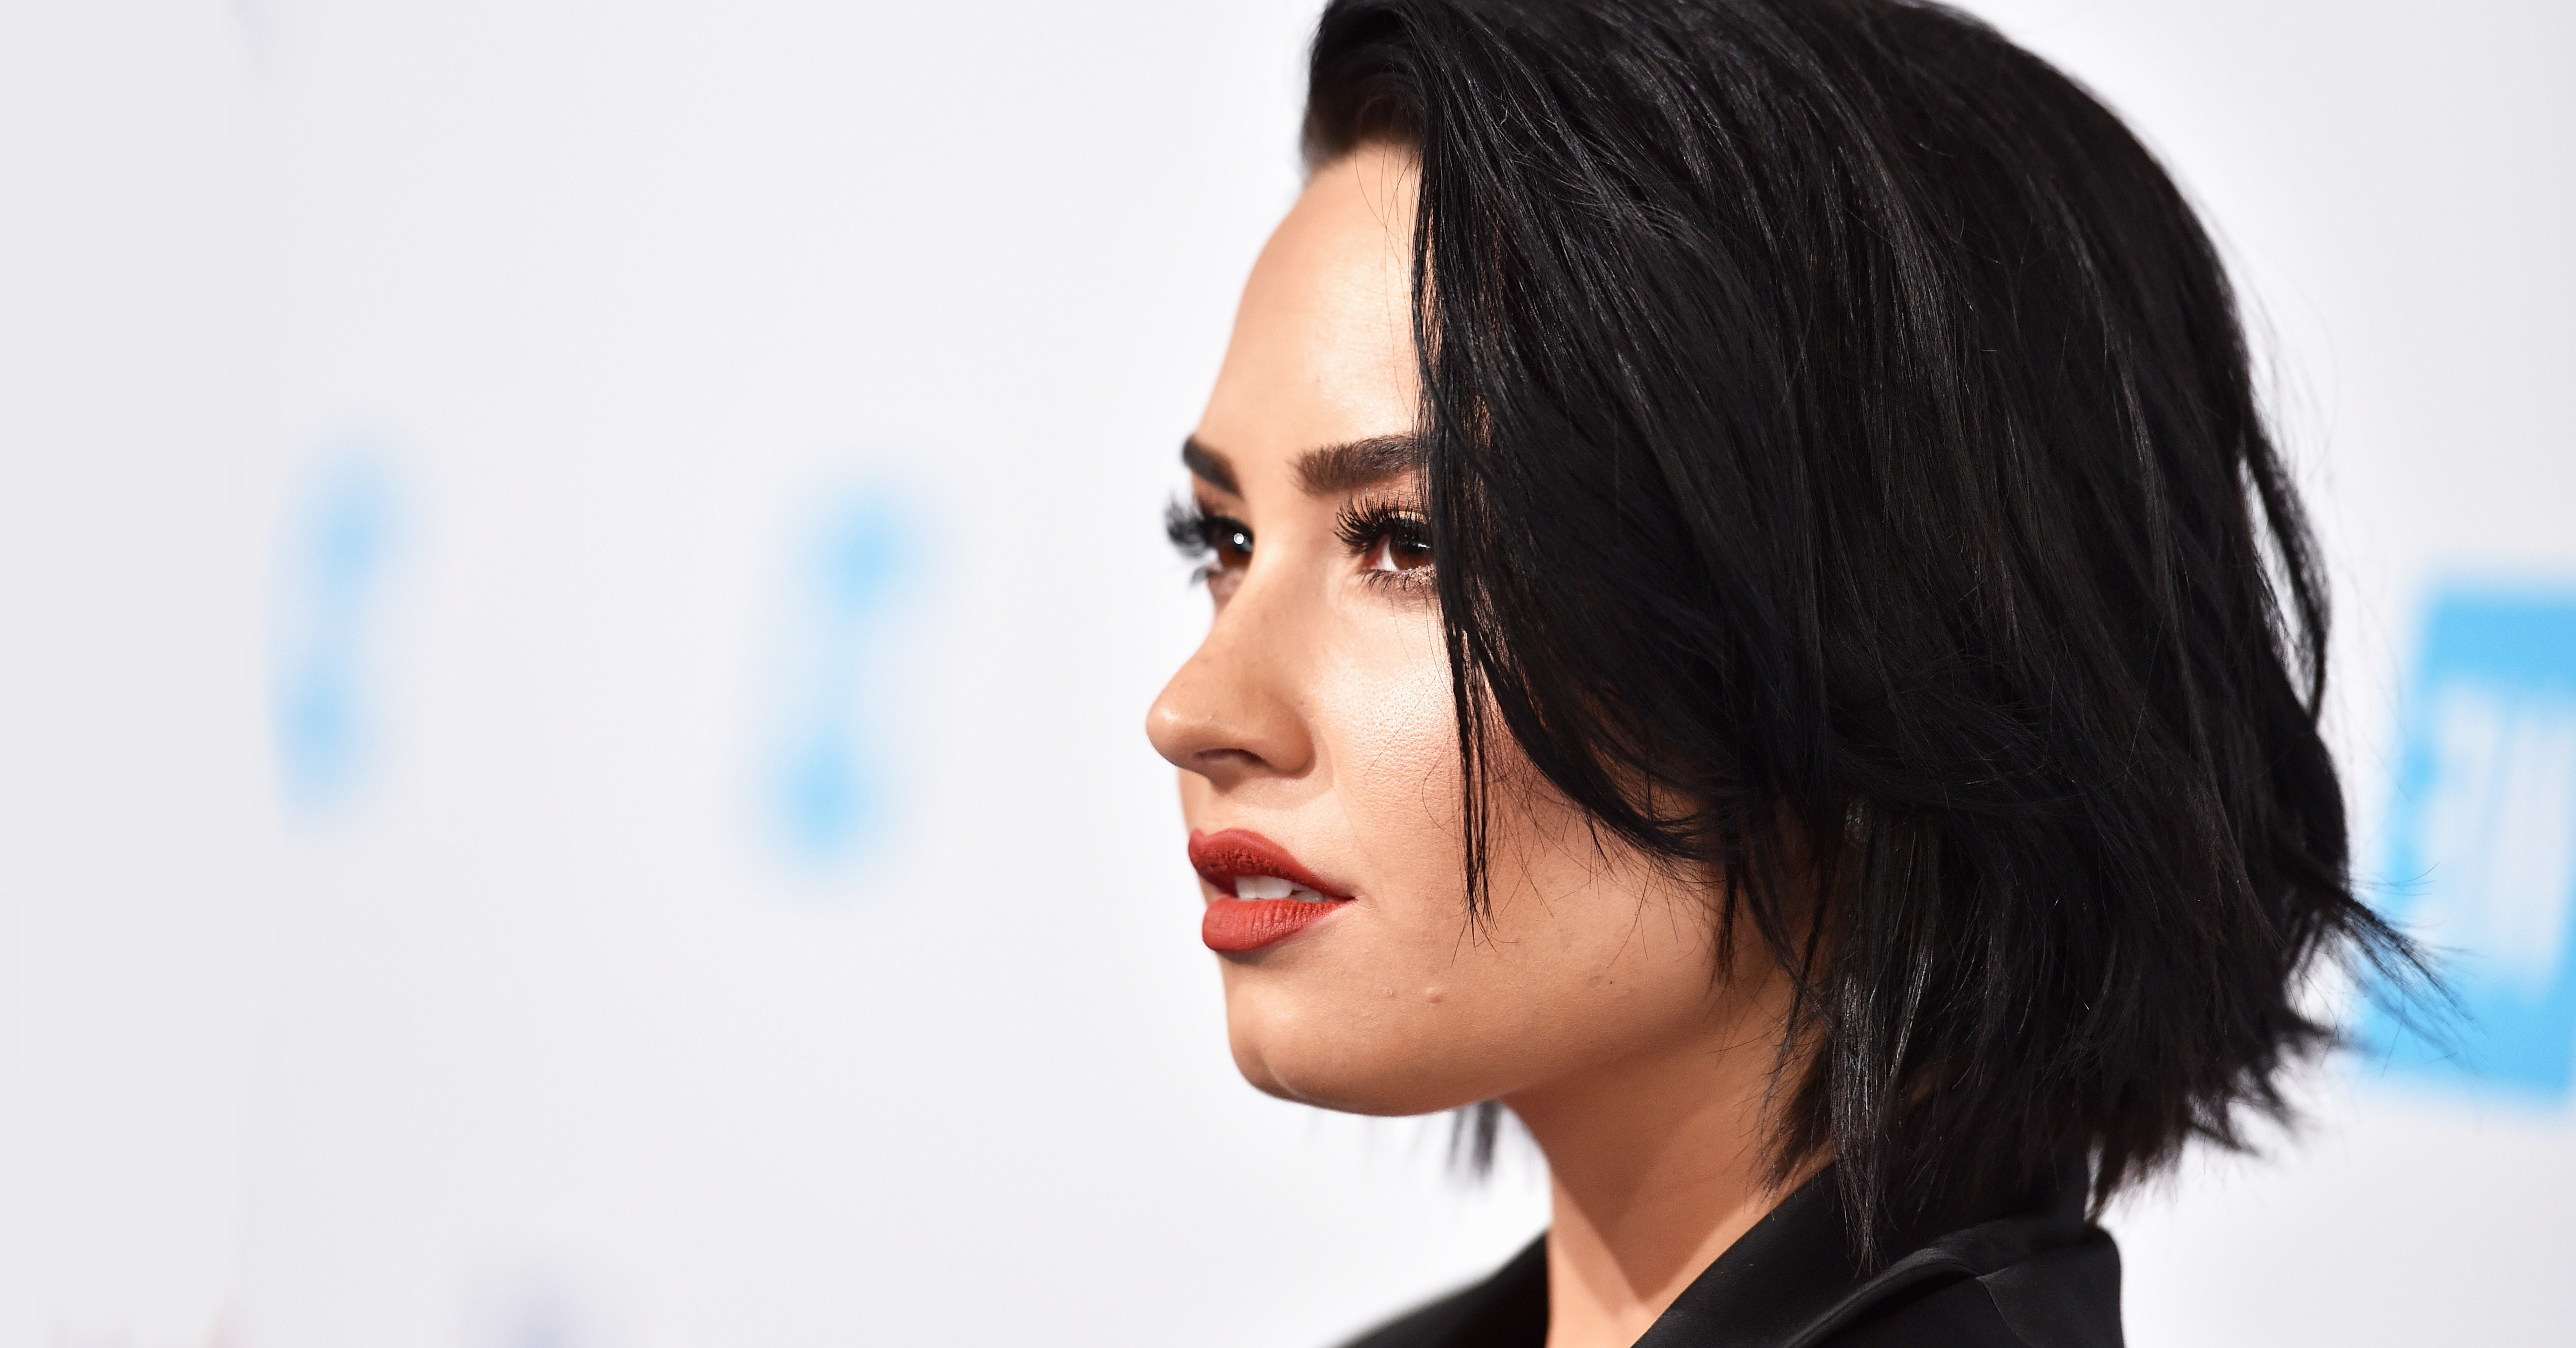 Demi Lovato Looks Incredible With Her New Ombré Hair | Glamour throughout Demi Lovato Short Haircuts